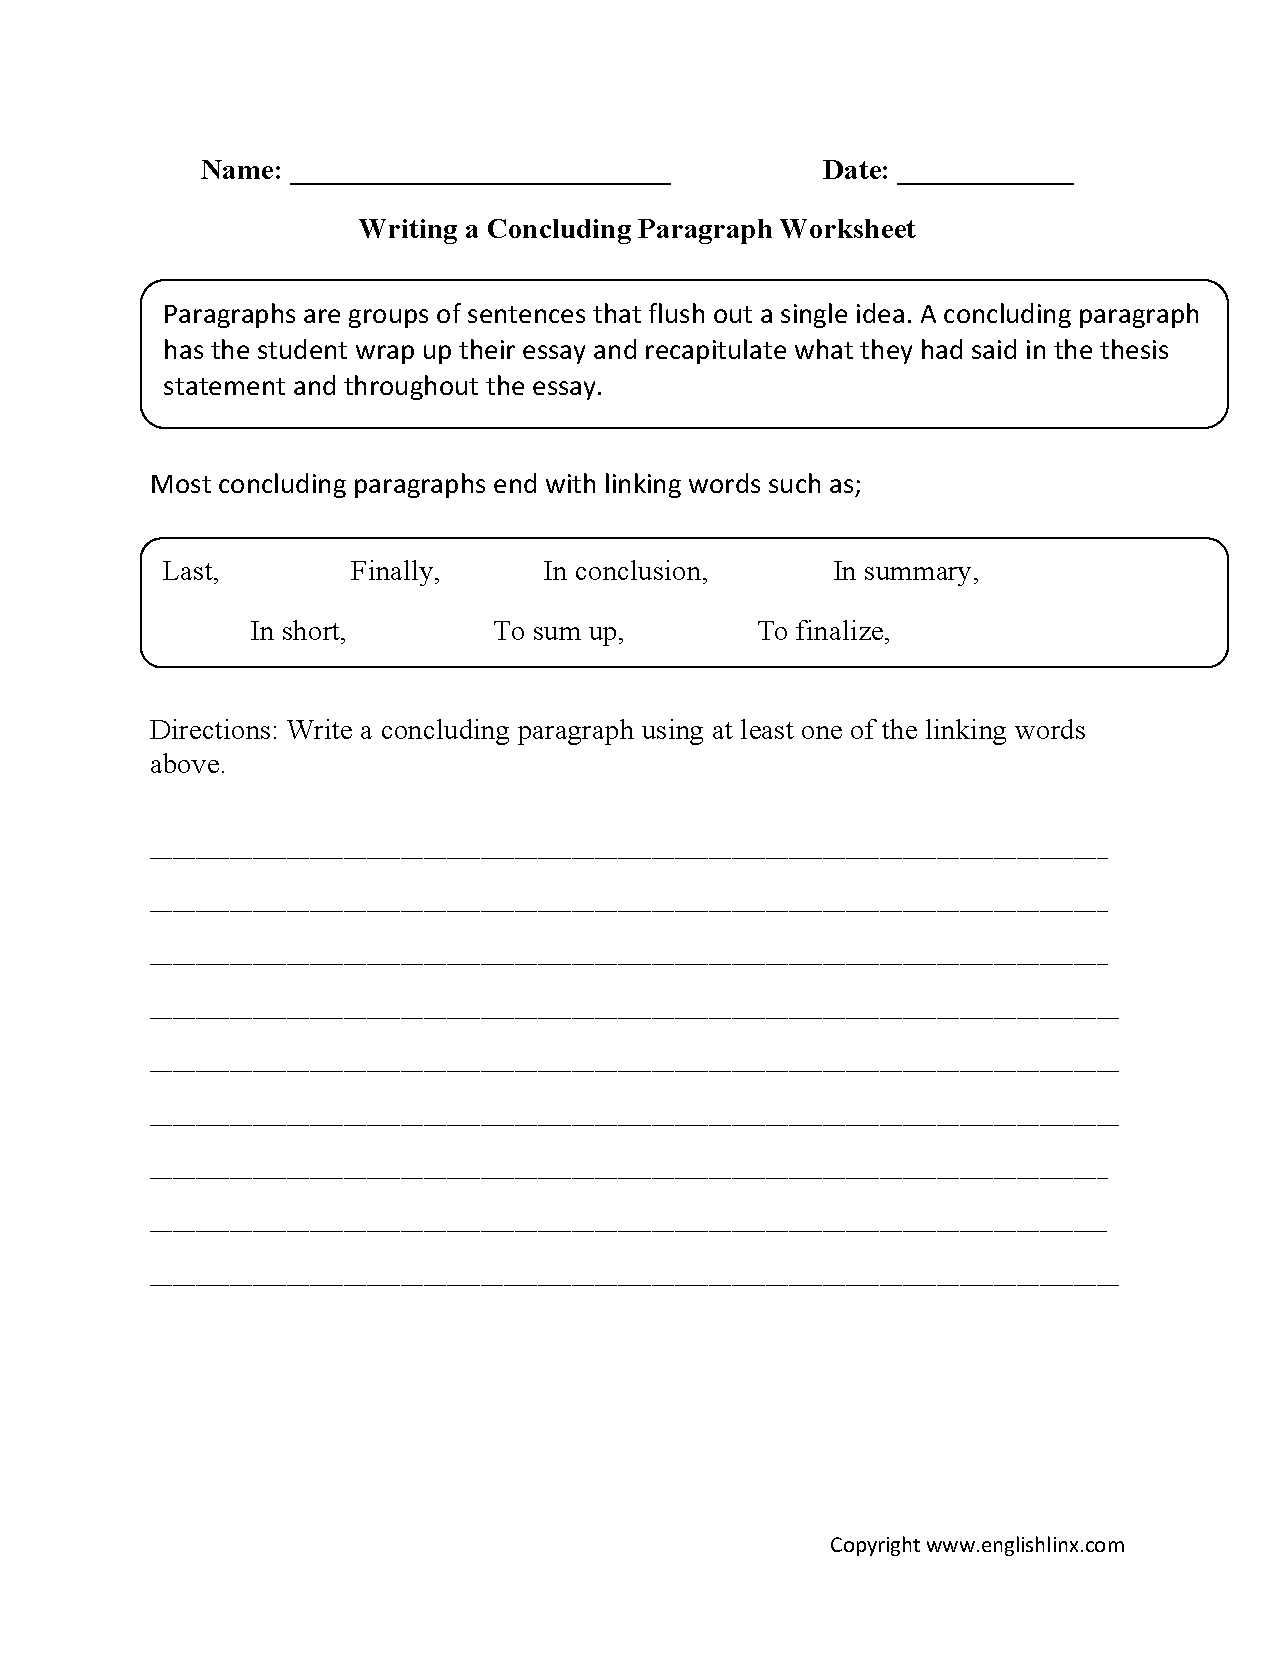 Worksheets How To Write A Paragraph Worksheet writing worksheets paragraph concluding worksheets